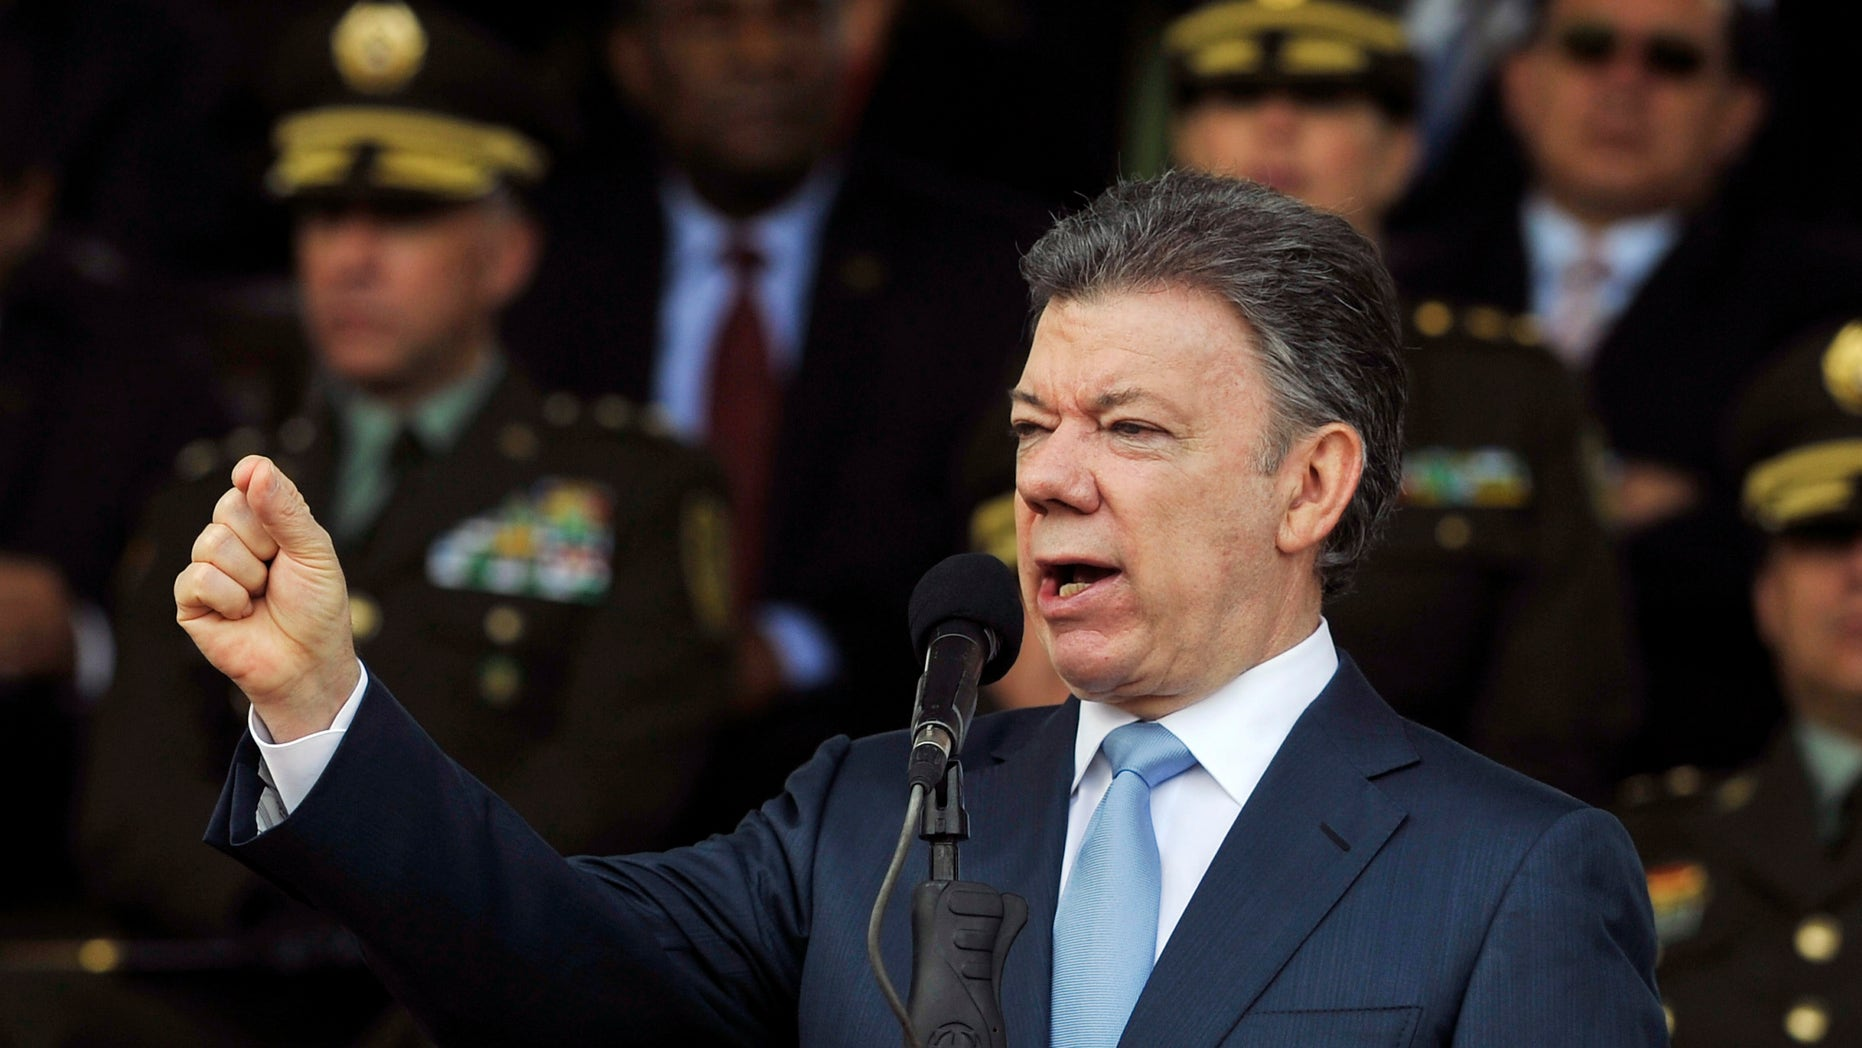 FILE - In this Nov. 6, 2013 file photo, Colombia's President Juan Manuel Santos speaks during a graduation ceremony for police cadets in Bogota, Colombia. Santos announced on Wednesday, Nov. 20, 2013 that he will run for reelection in 2014. (AP Photo/Carlos Julio Martinez, File)